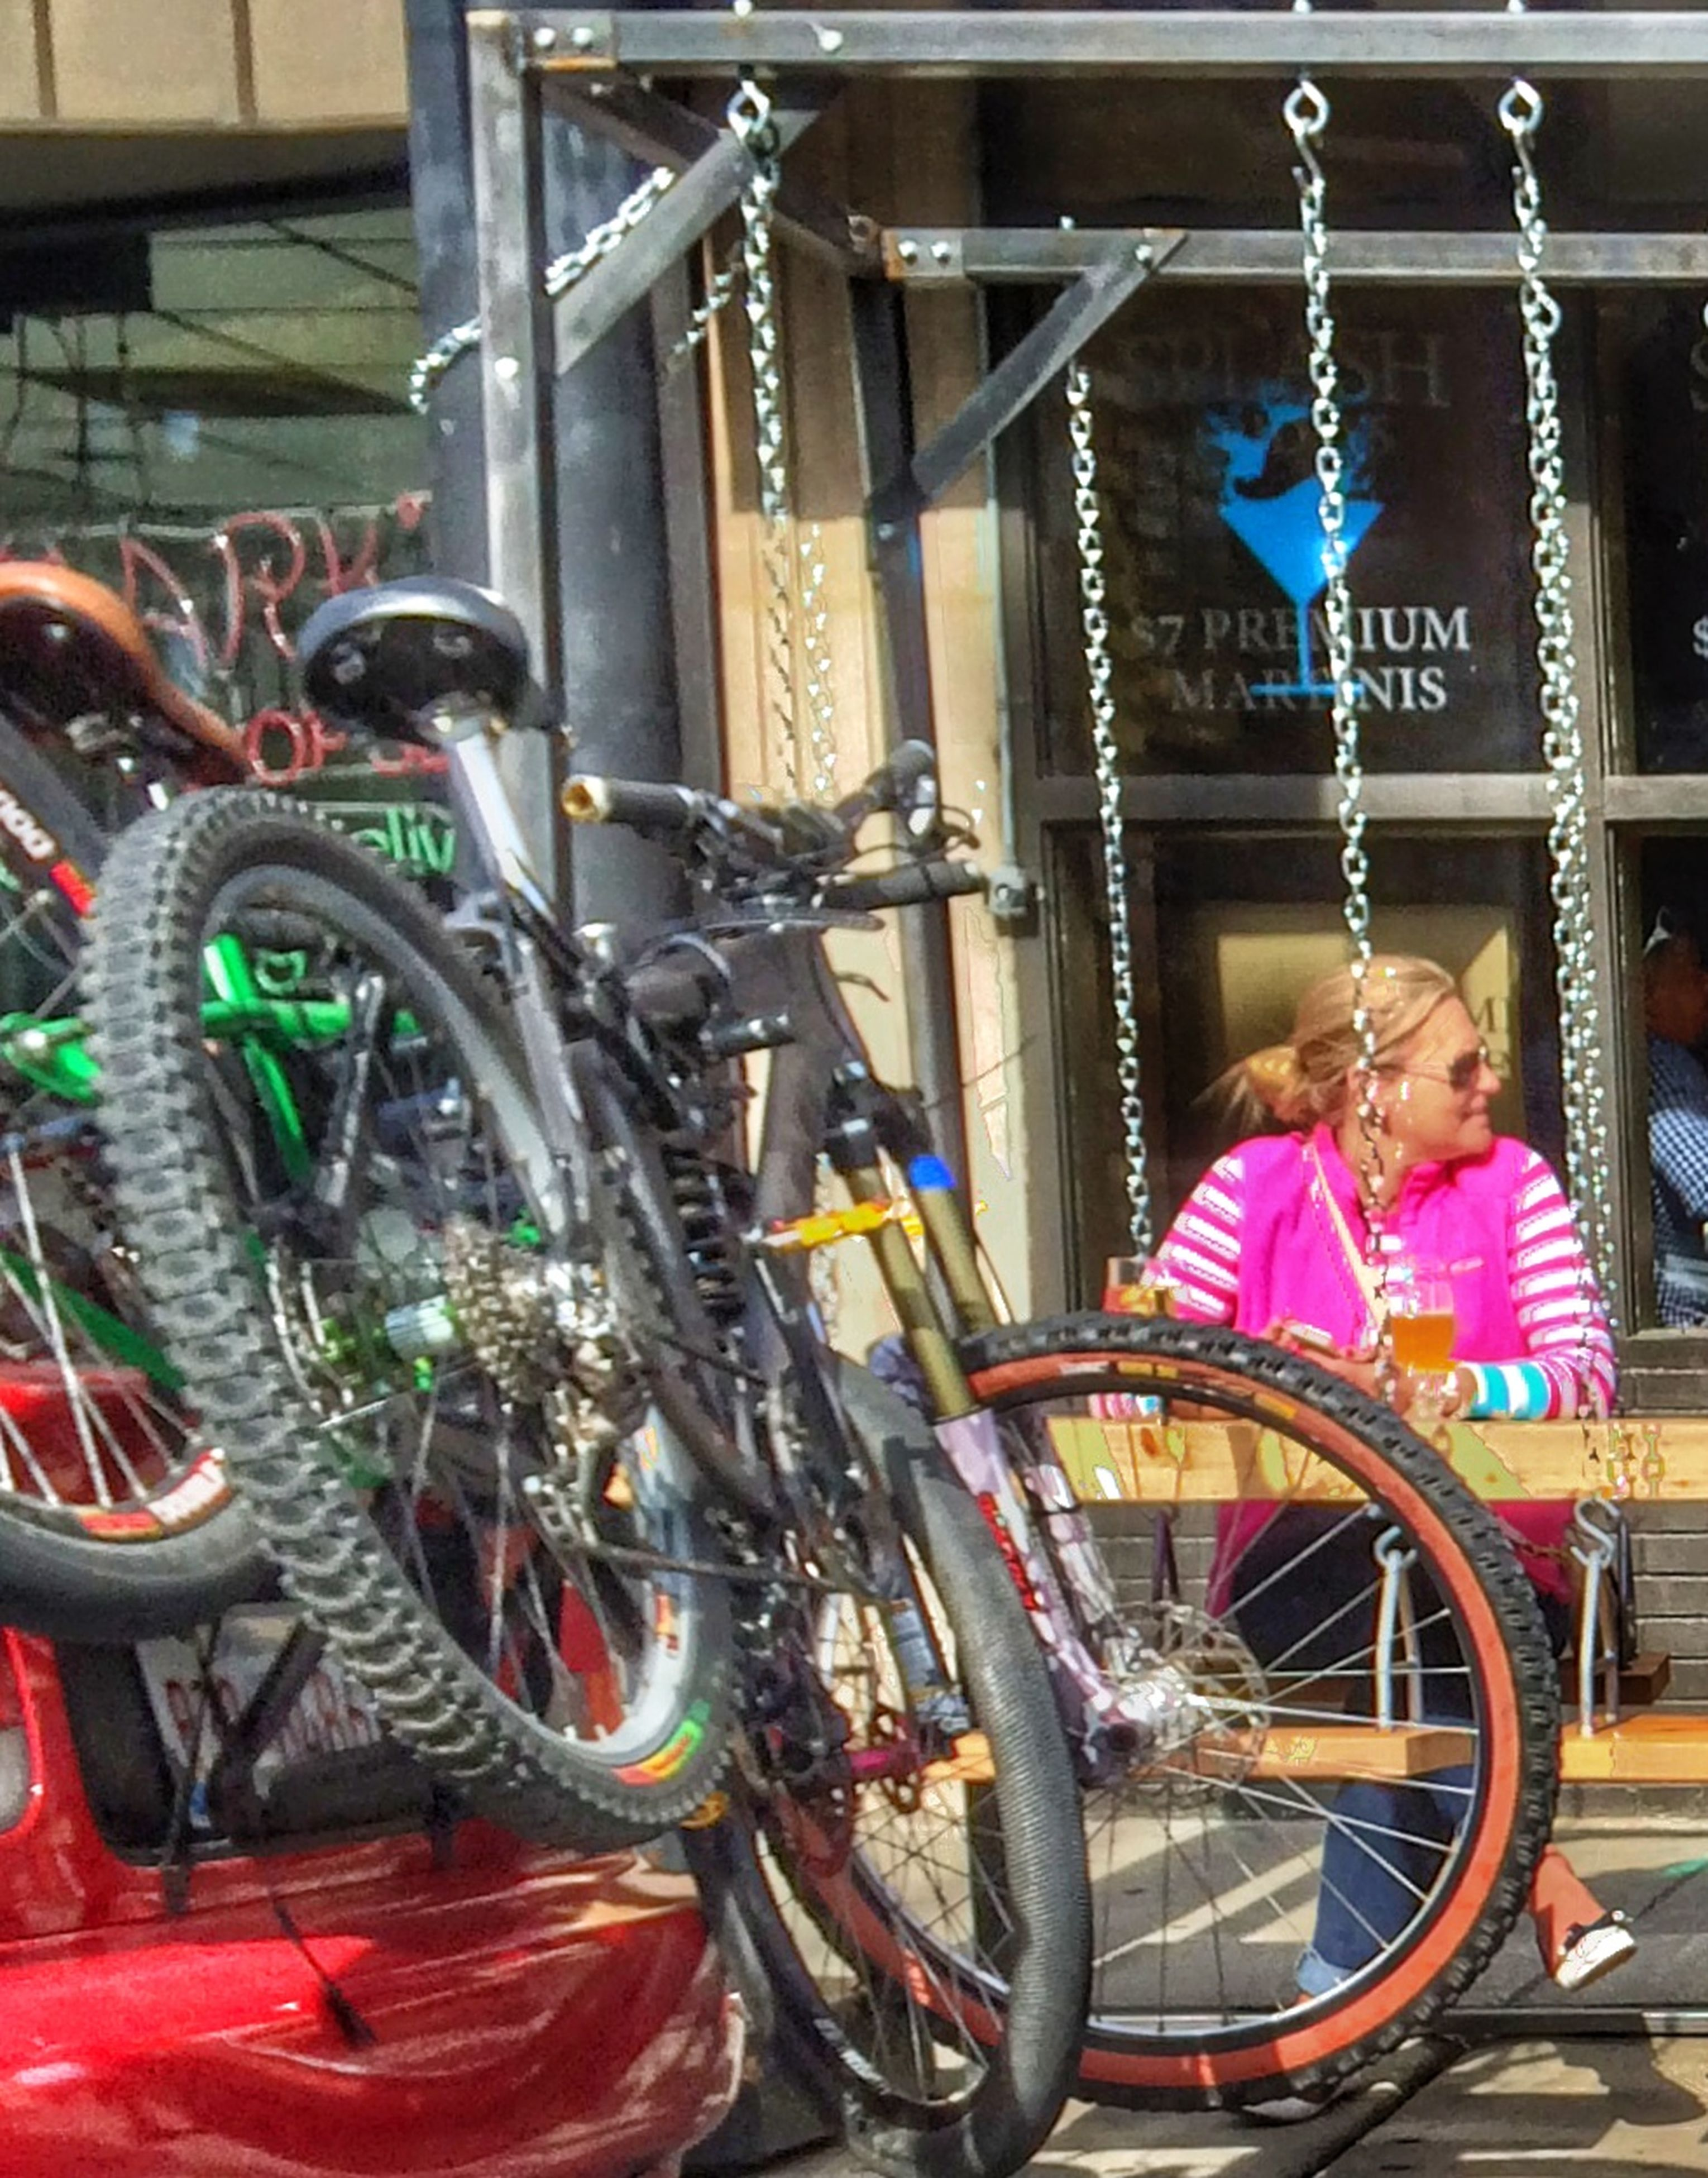 bicycle, mode of transport, transportation, land vehicle, stationary, parking, parked, wheel, travel, outdoors, day, built structure, no people, railing, multi colored, leaning, incidental people, architecture, metal, street